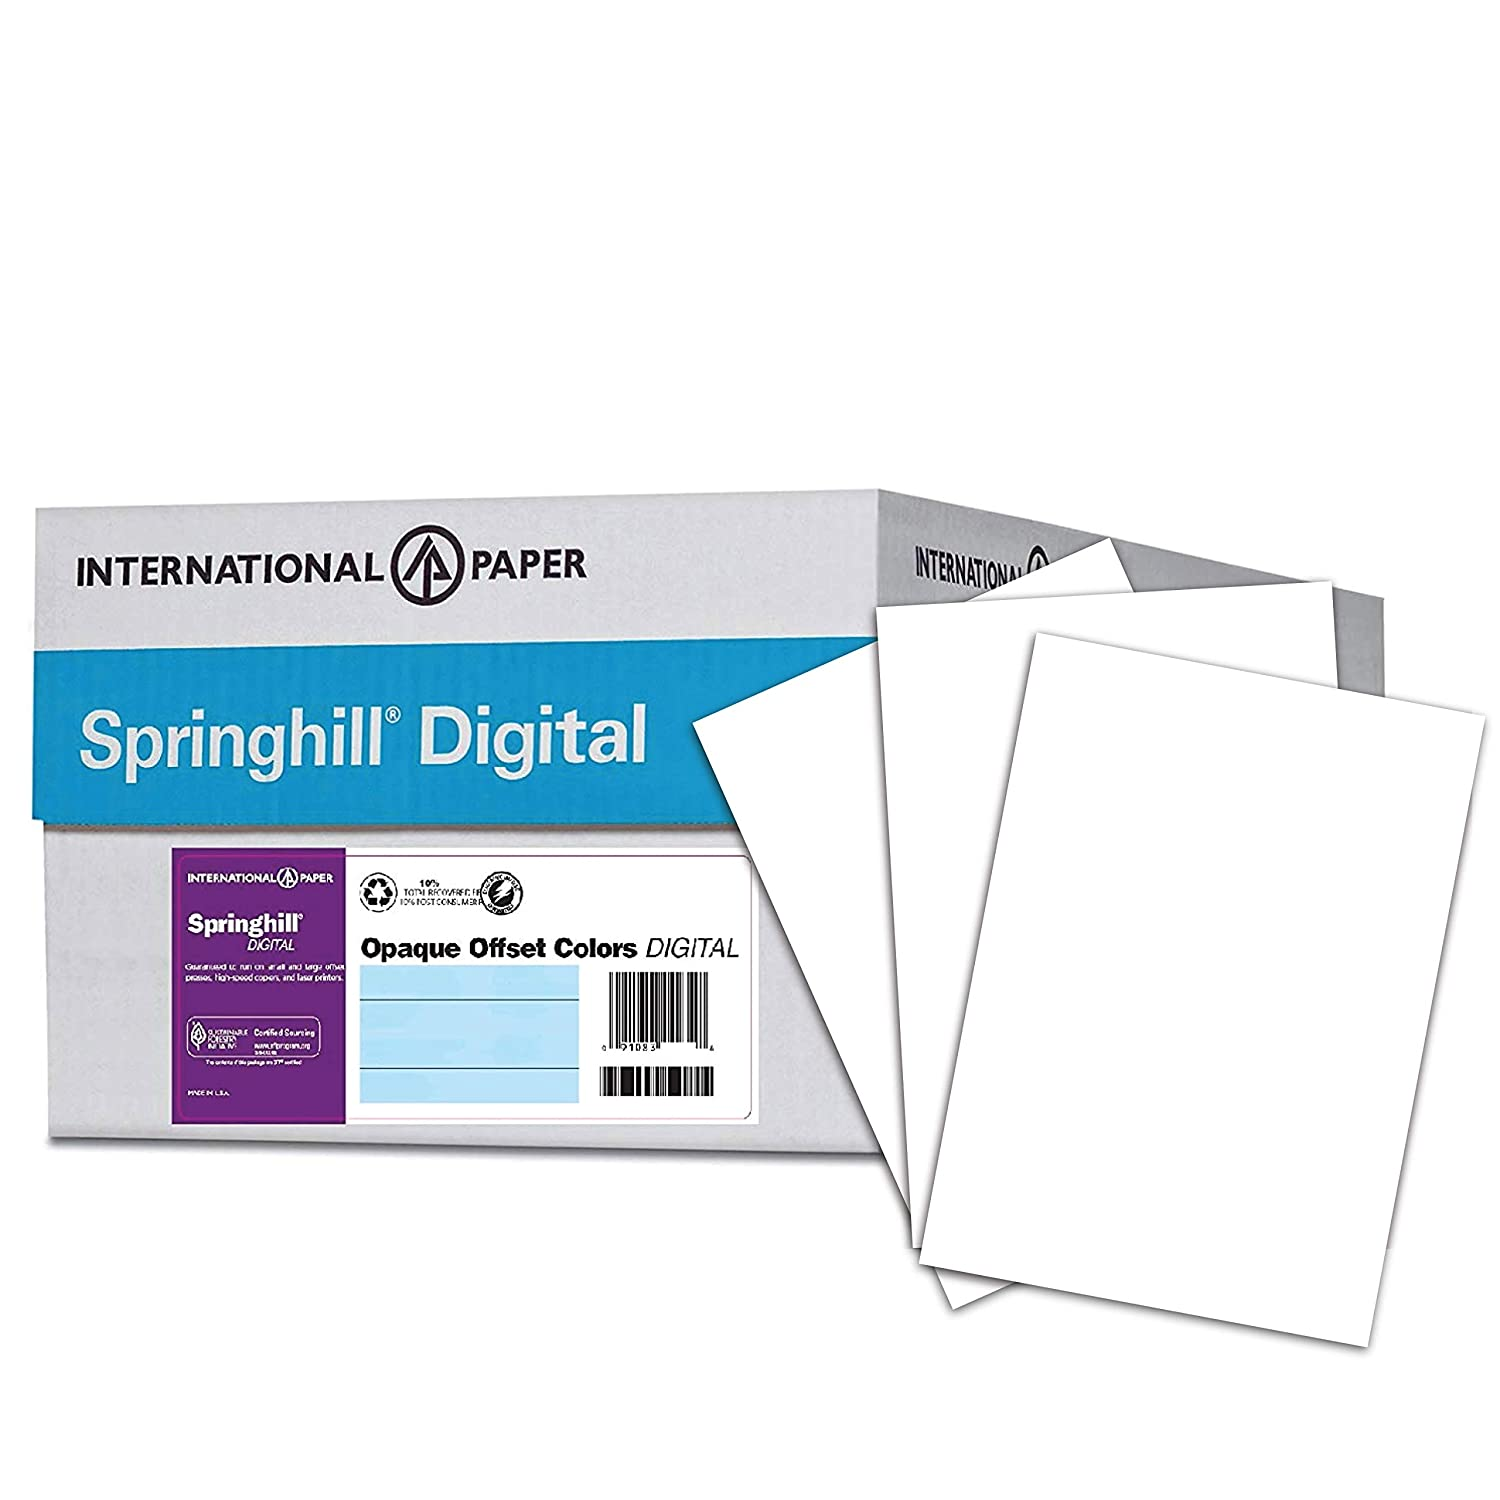 Springhill Cardstock Paper, White Paper, 90lb, 163gsm, 8.5 x 11, 92 Bright, 8 Reams / 2,000 Sheets - Index Card Stock, Thick Paper (015101C) International Paper (Office)